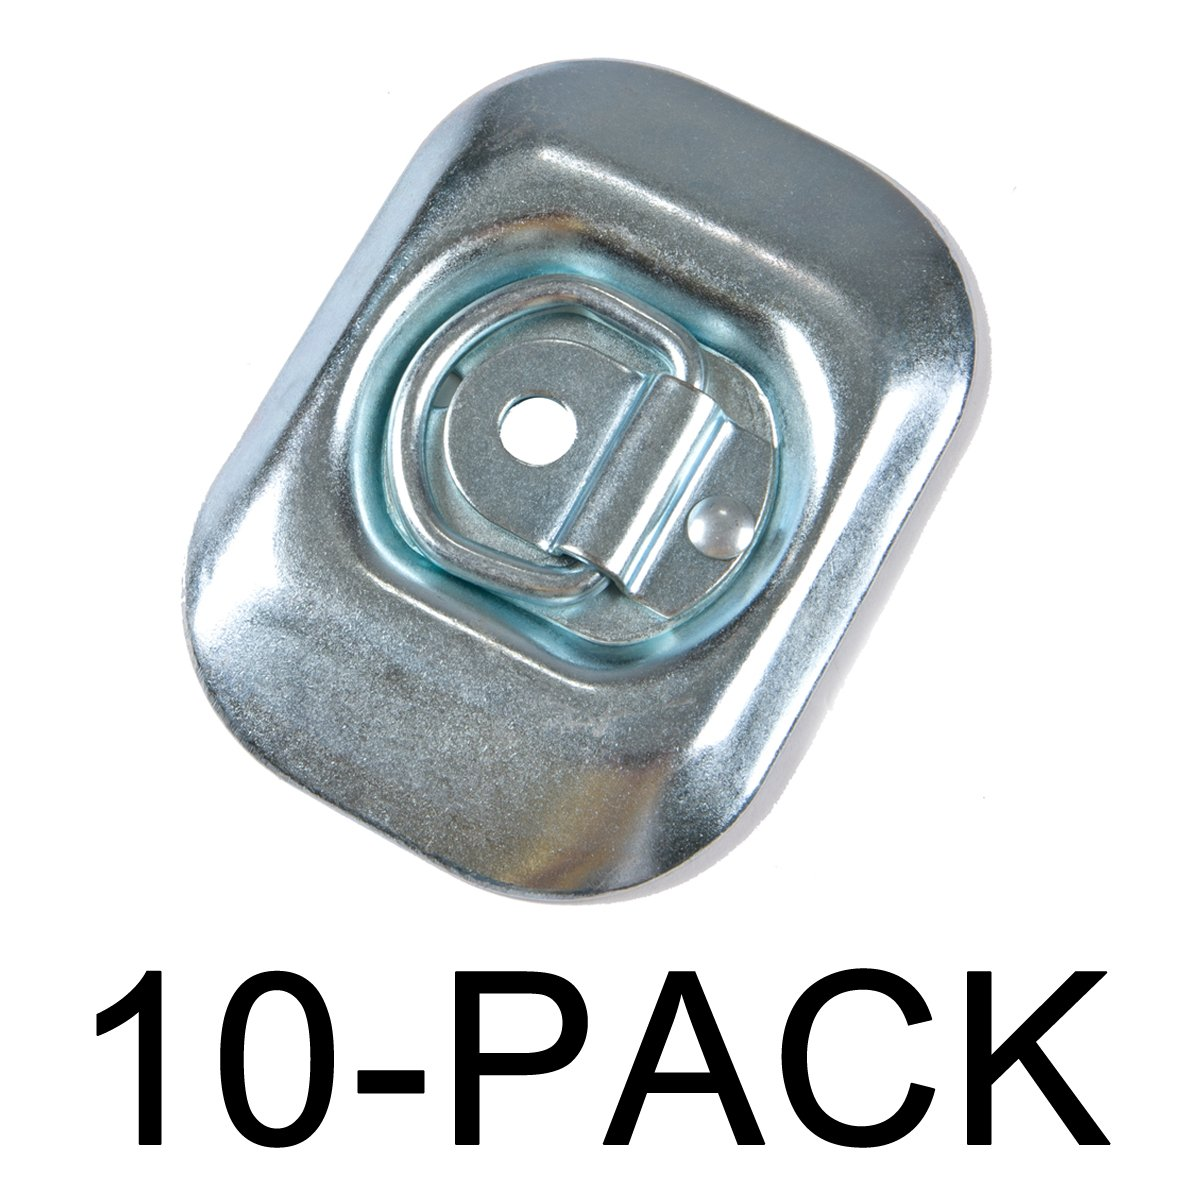 Surface Mount Tie Downs D-Ring 4,000 lb. Capacity Tiedown 10-Pack